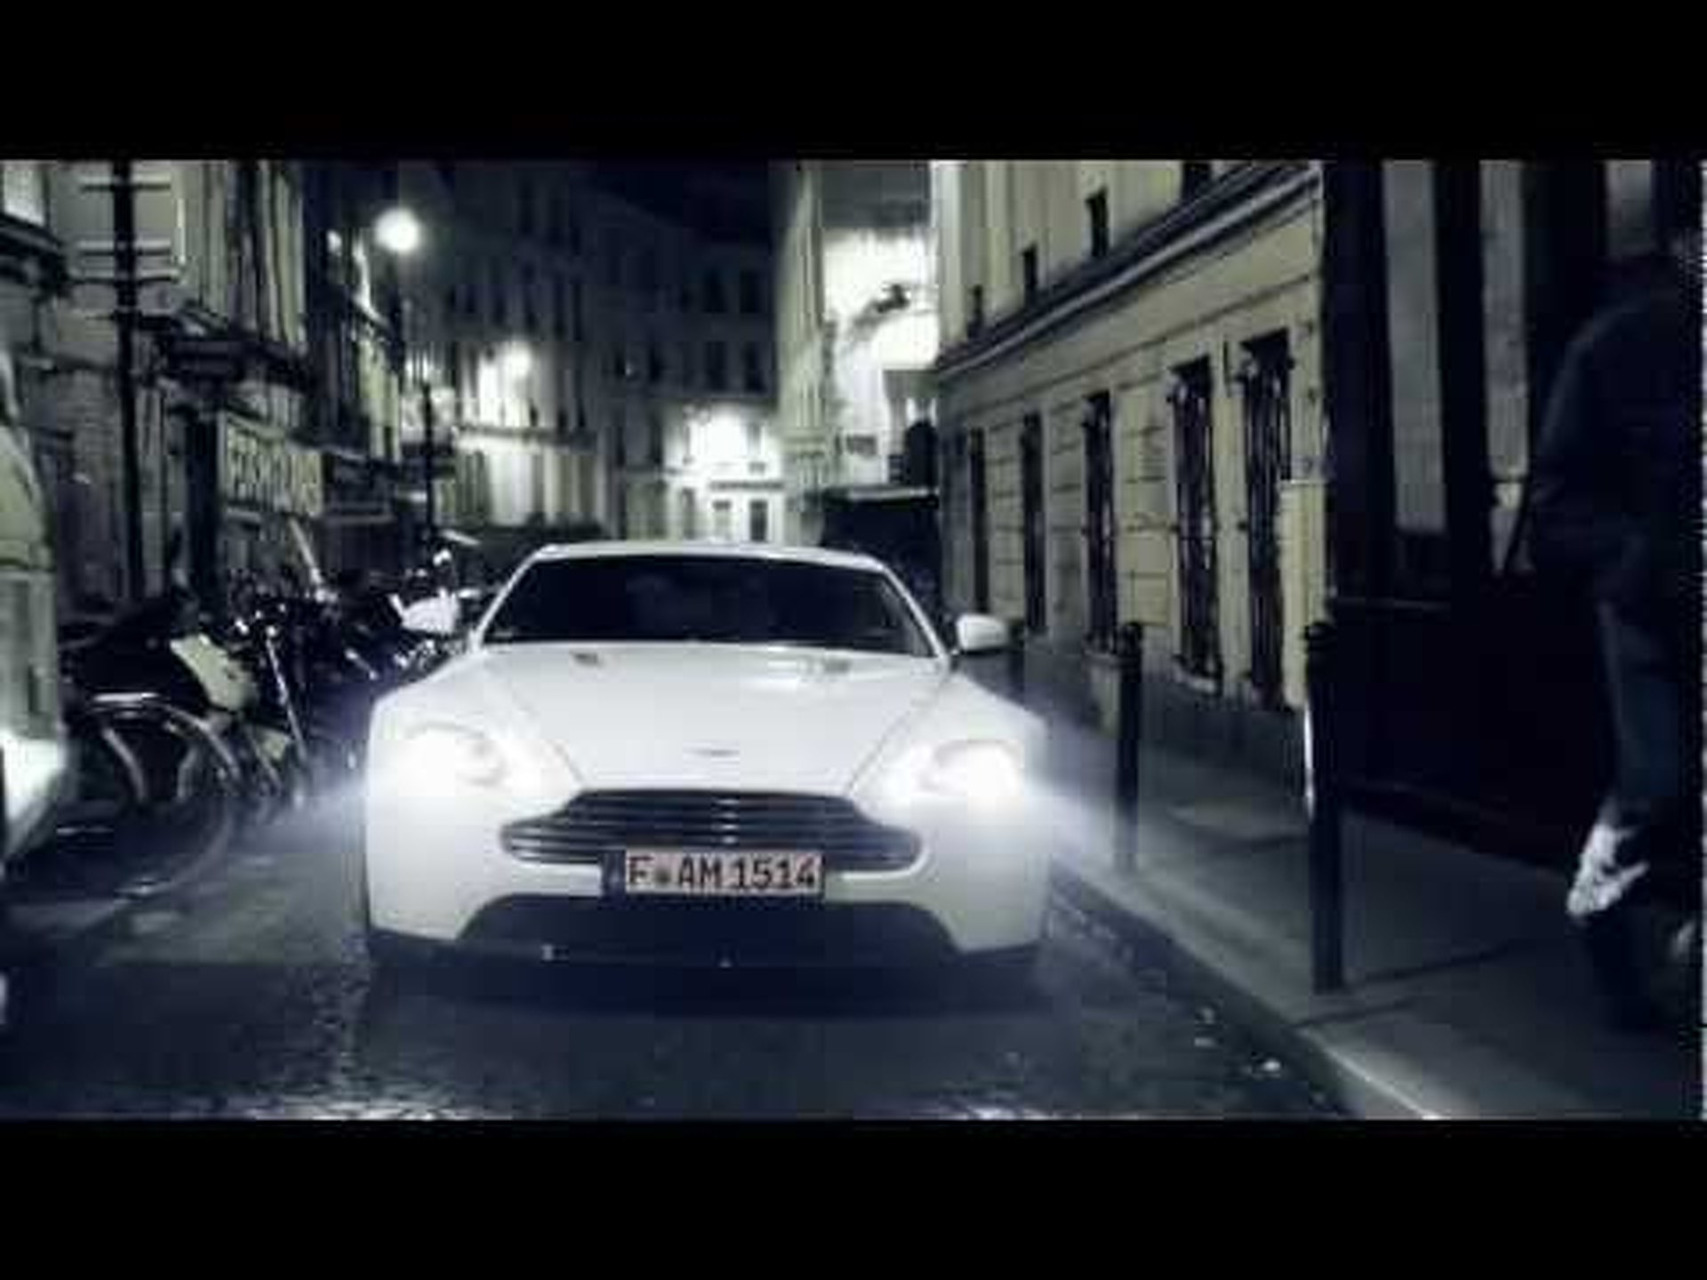 The New 2012 Aston Martin V8 Vantage